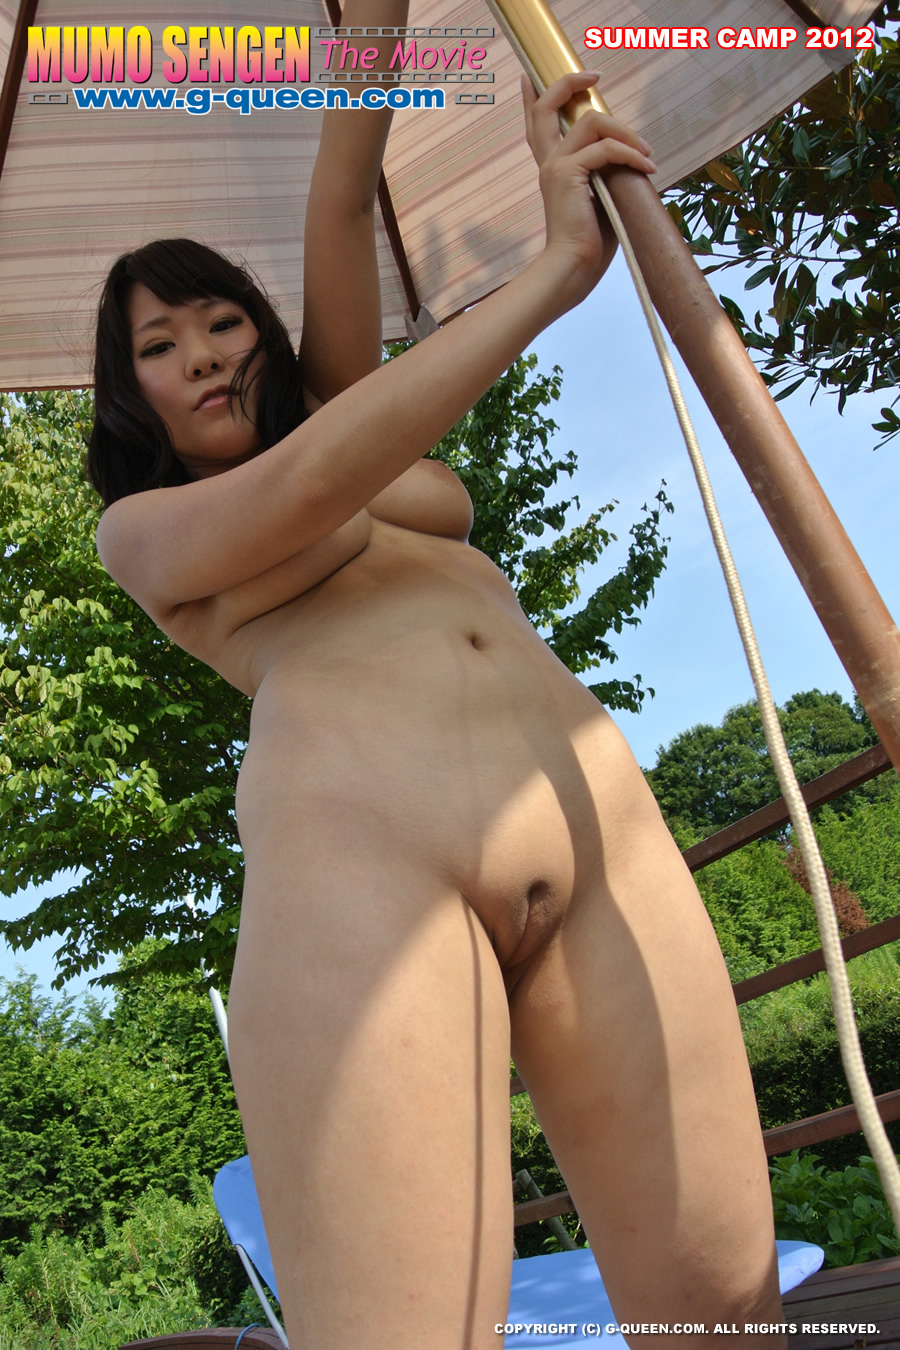 Xxx chubby camp girls pic 467